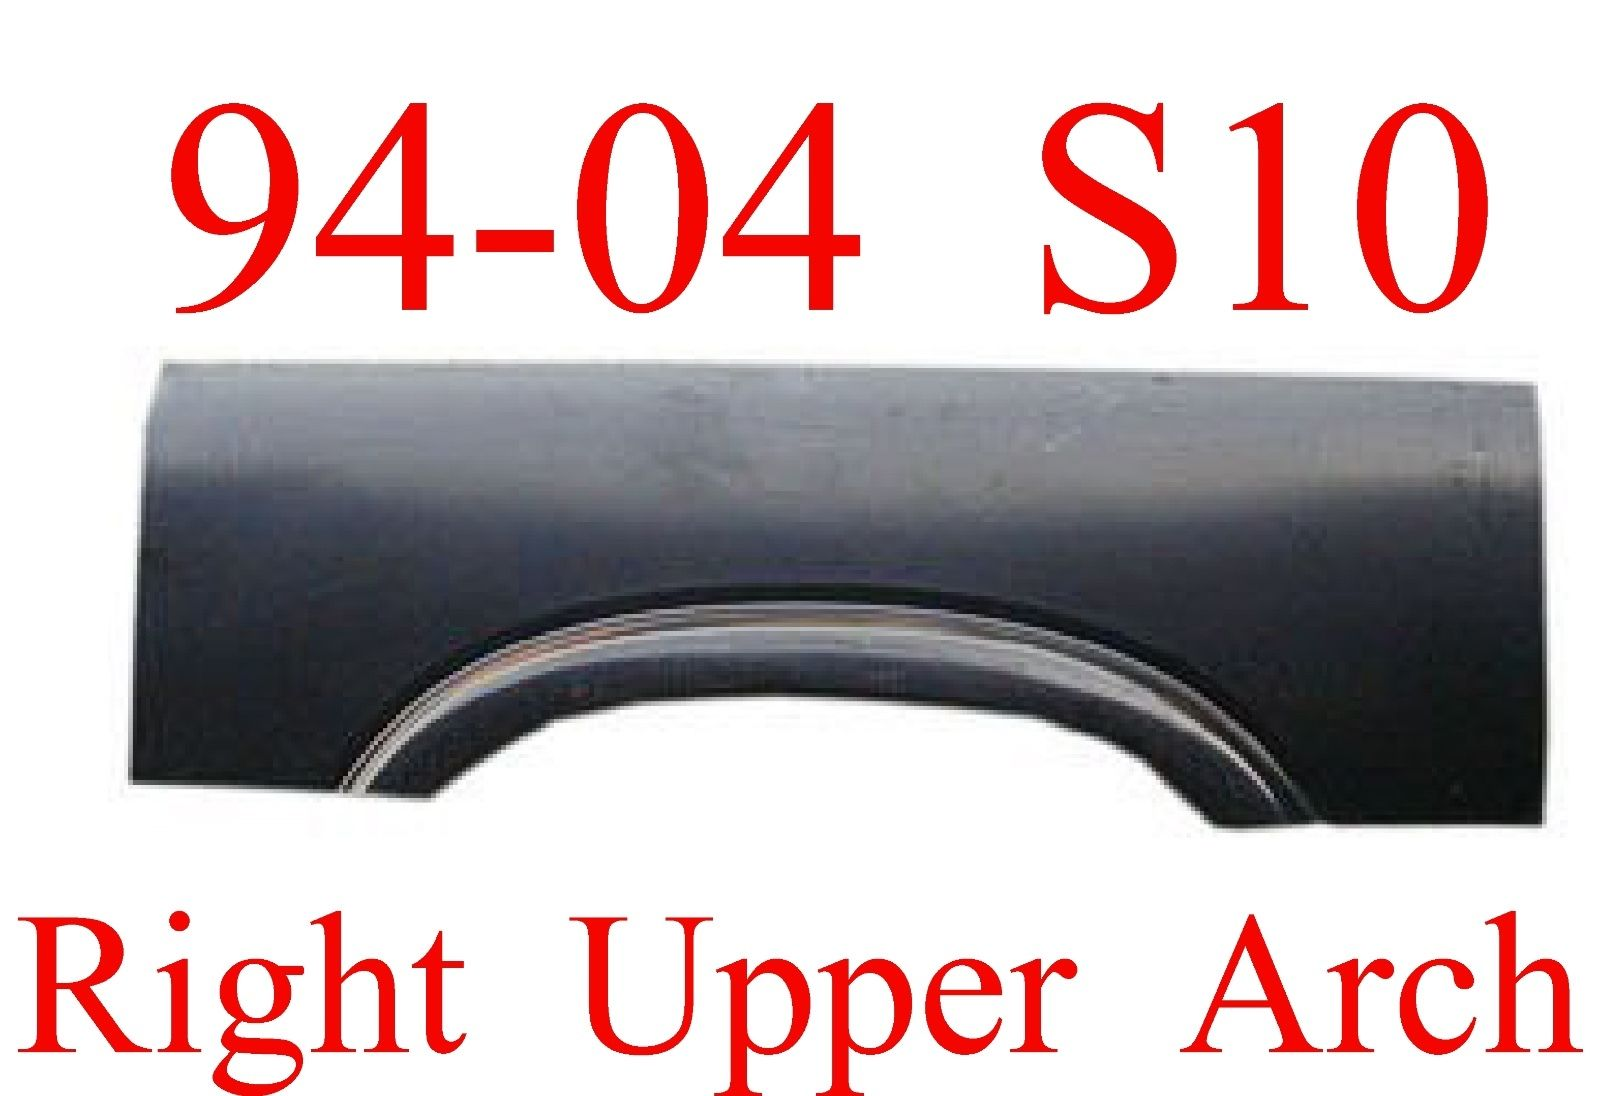 98-04 Chevy S10 Right Upper Arch